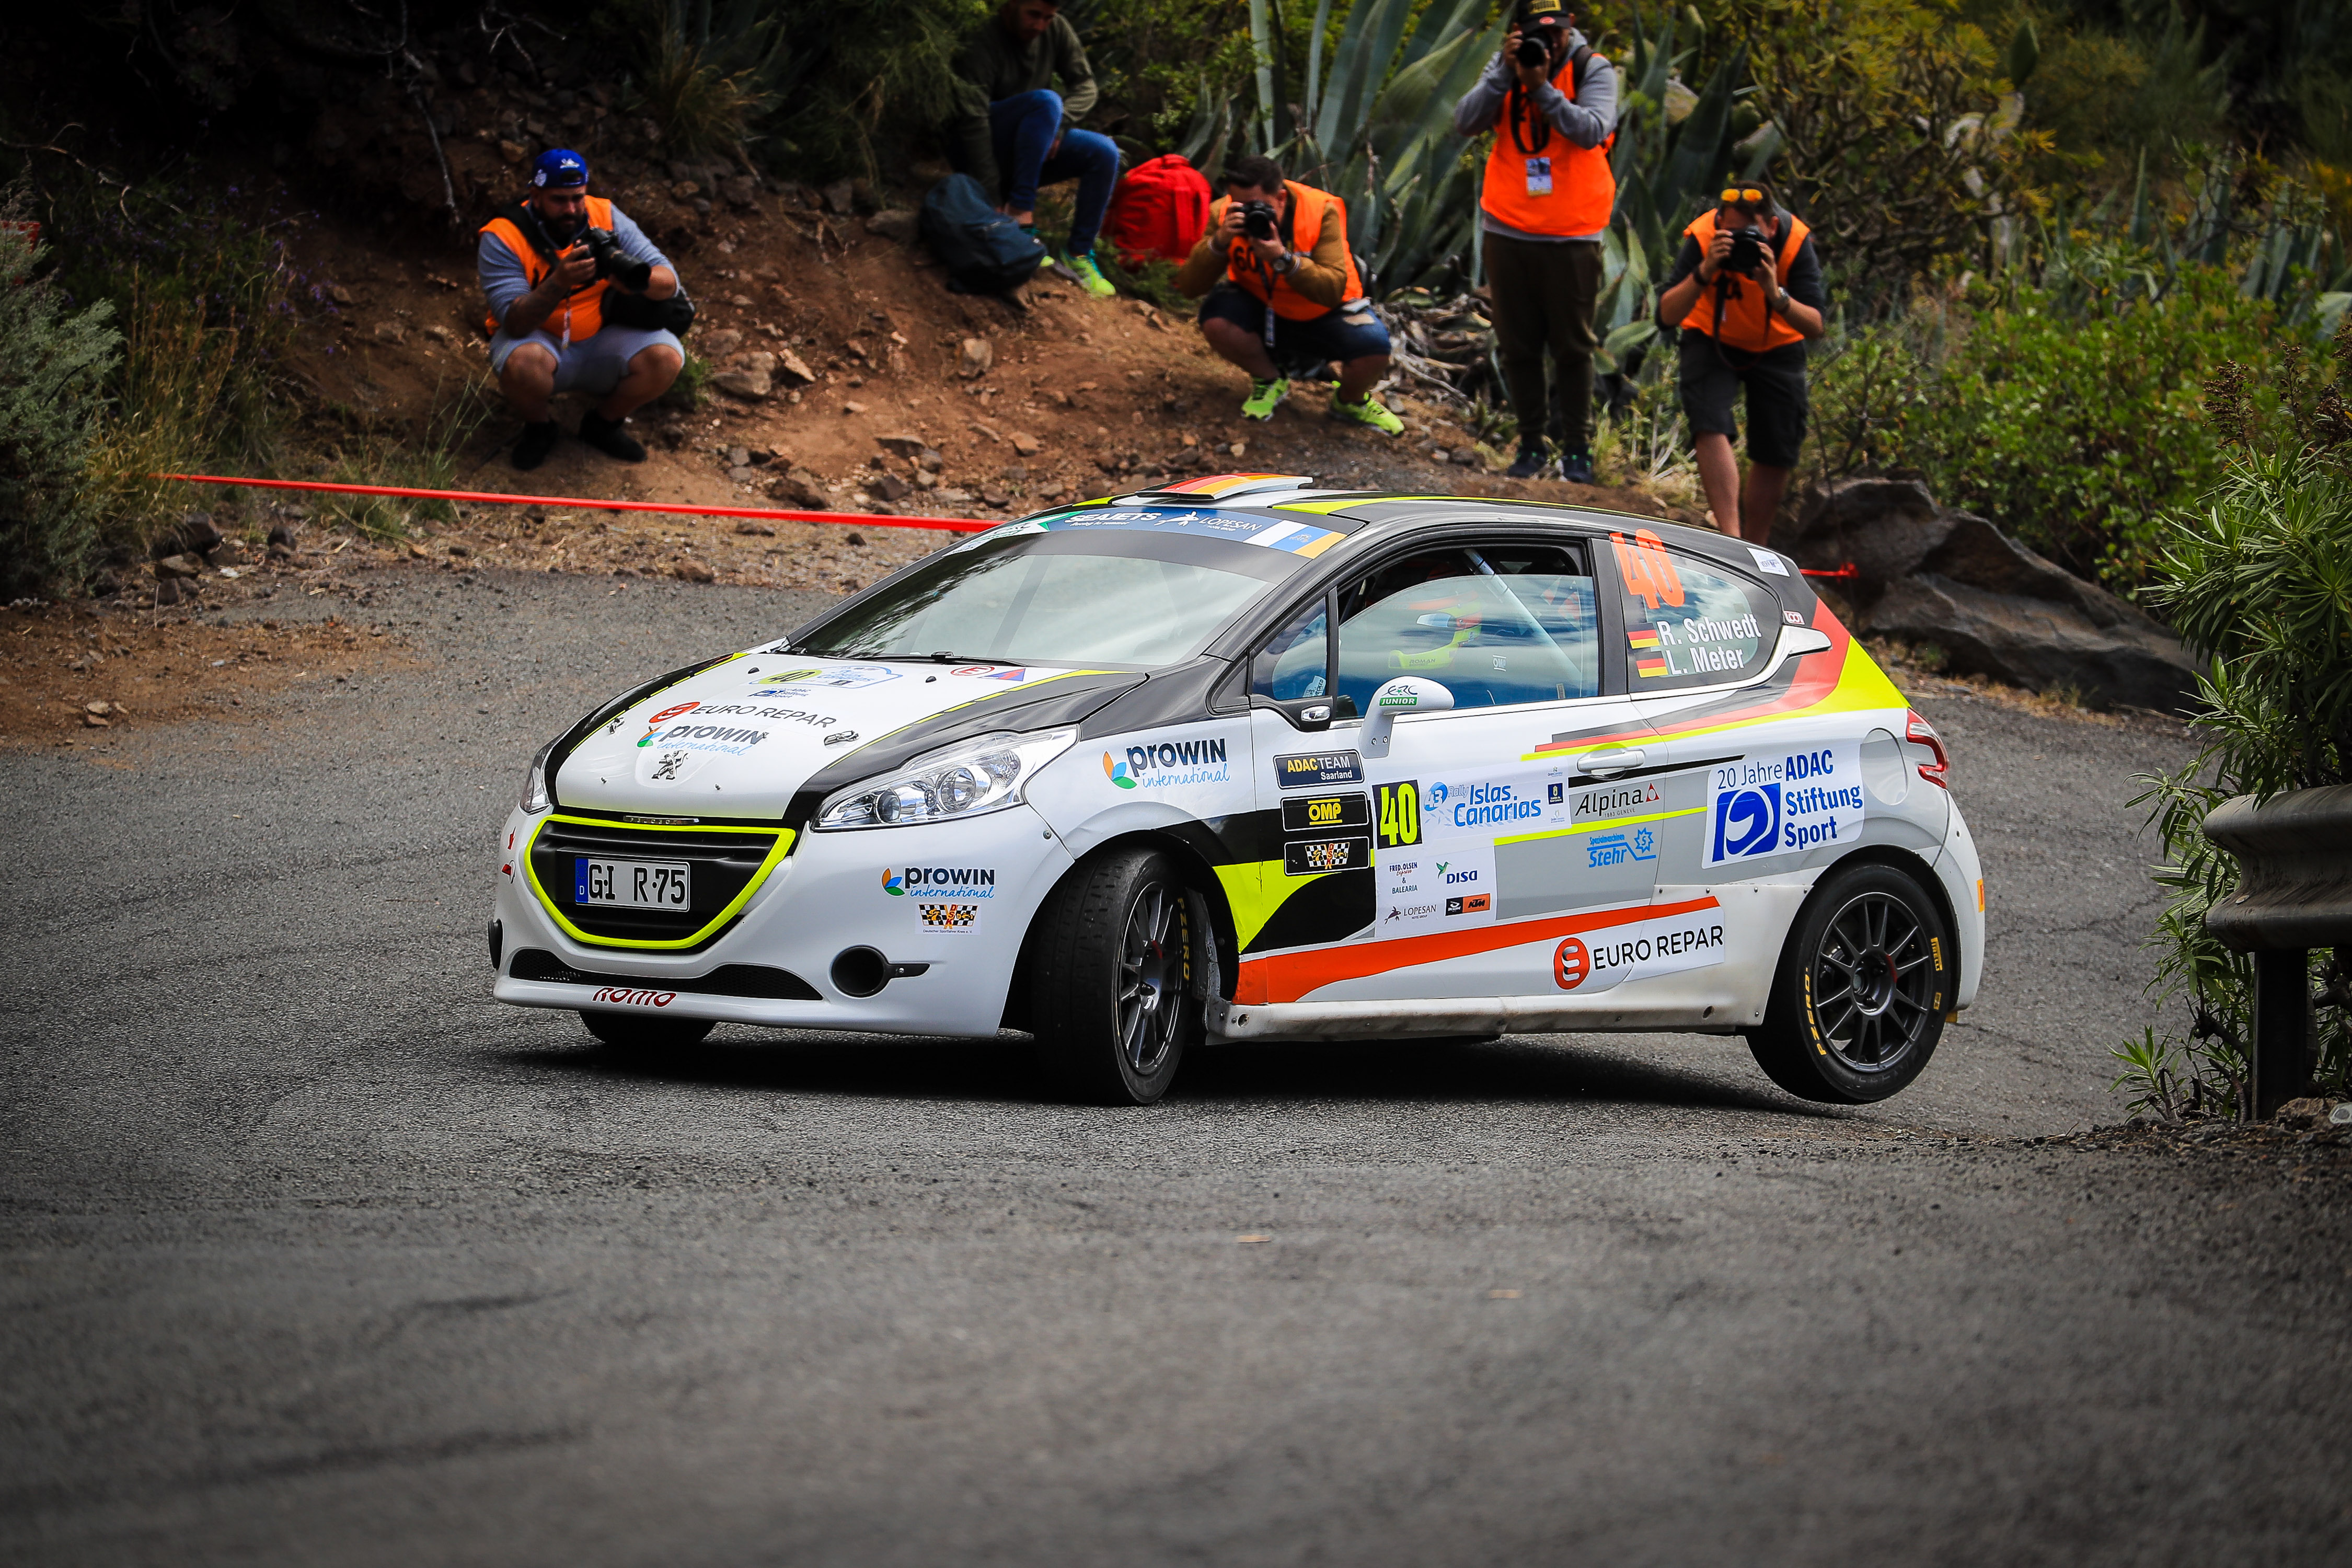 ERC Junior Schwedt out to prove he's a (Roman) gladiator on asphalt